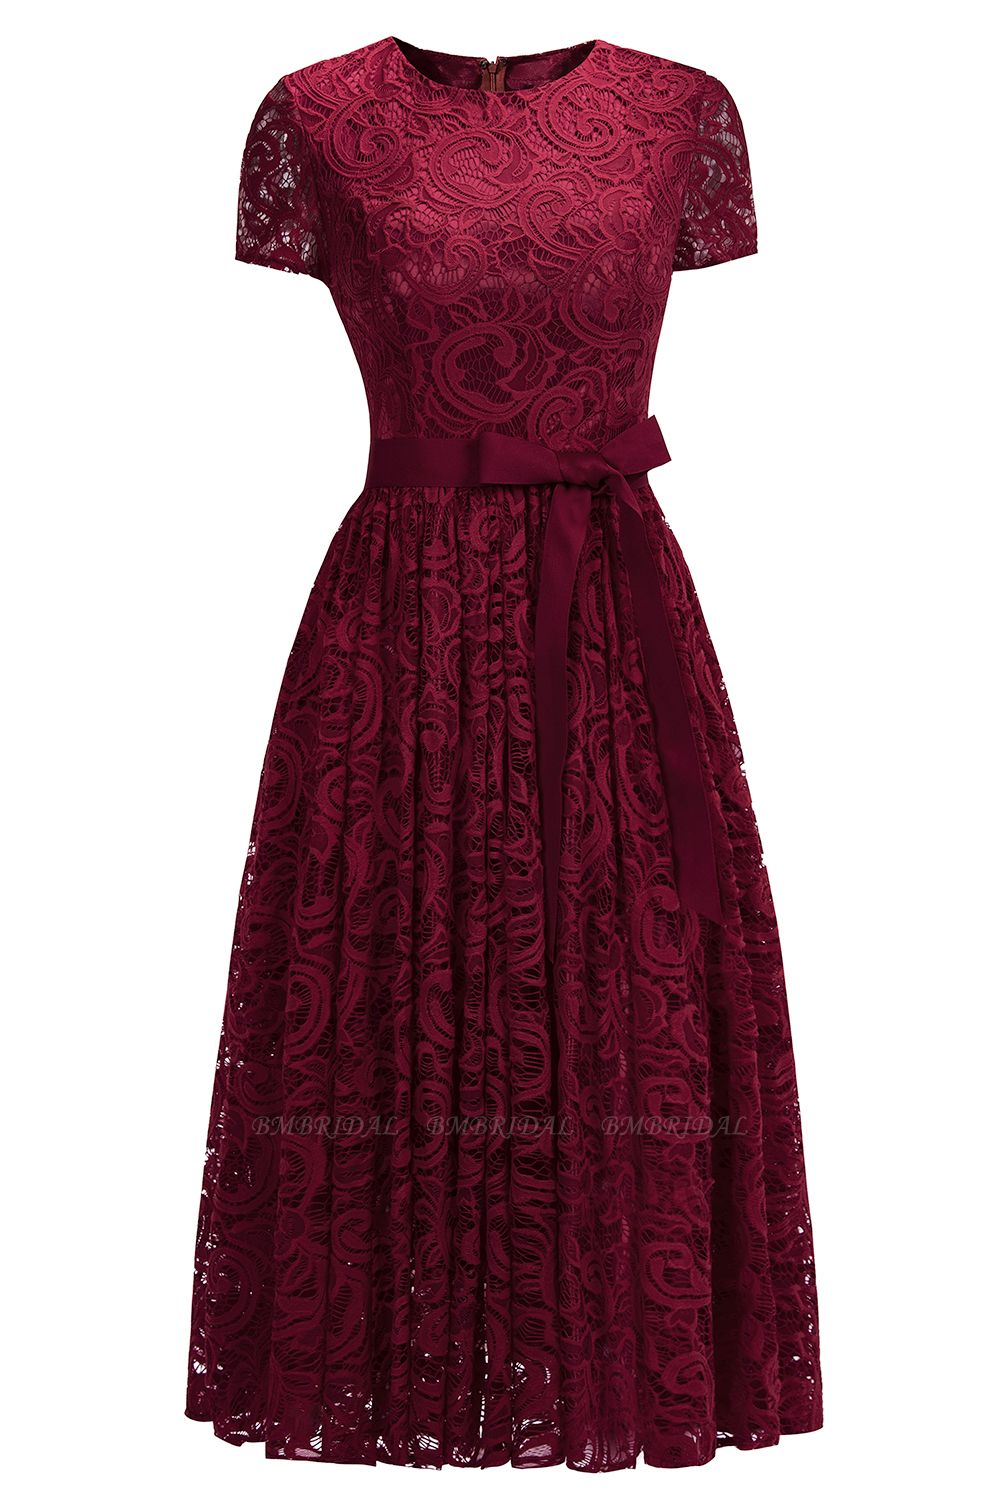 BMbridal Short Sleeves Seath Red Lace Dress with Ribbon Bow